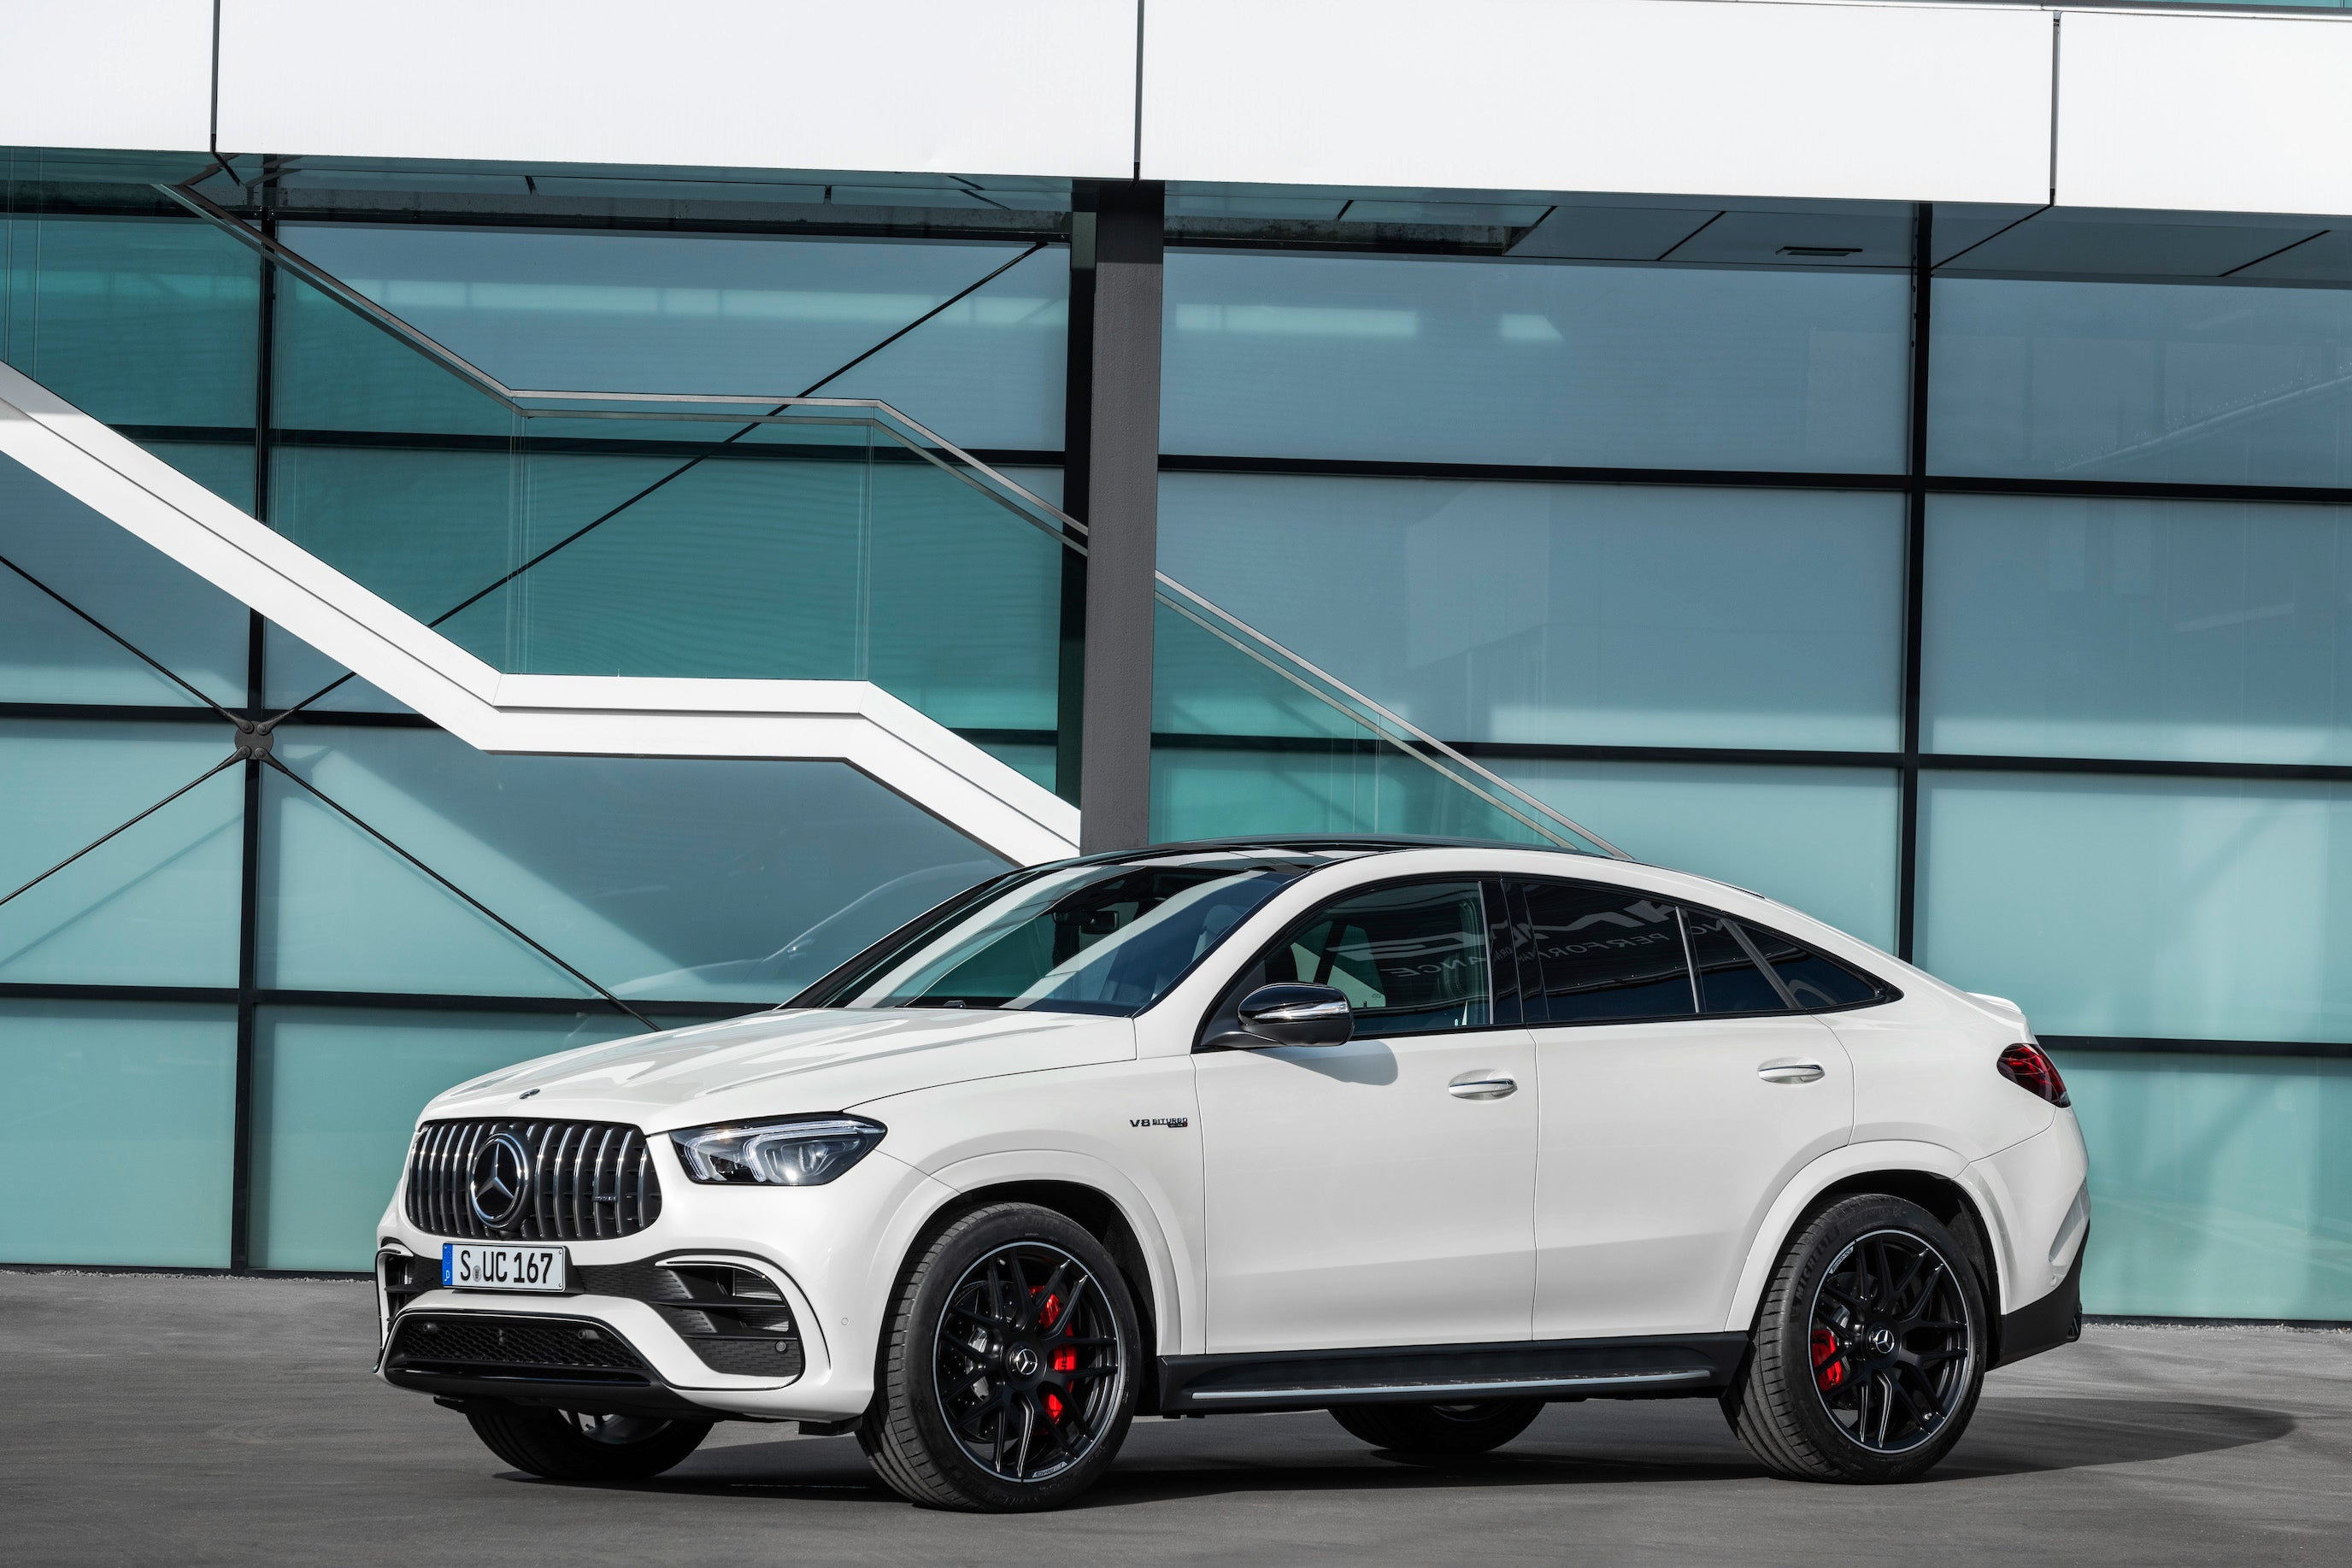 Mercedes-AMG GLE 63 S 4MATIC+ Coupé 03